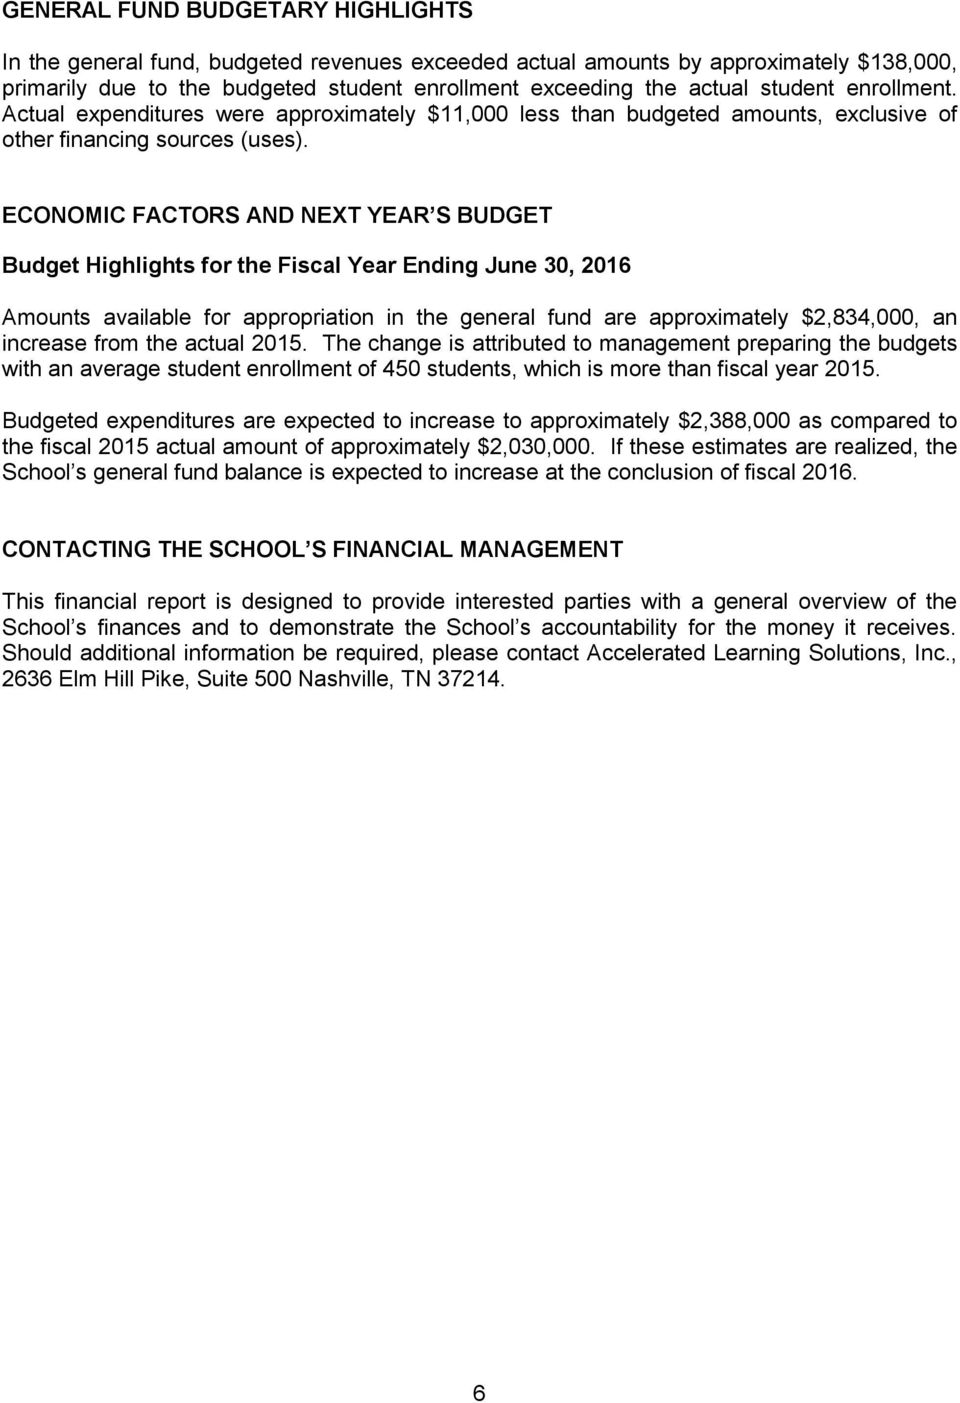 ECONOMIC FACTORS AND NEXT YEAR S BUDGET Budget Highlights for the Fiscal Year Ending June 30, 2016 Amounts available for appropriation in the general fund are approximately $2,834,000, an increase